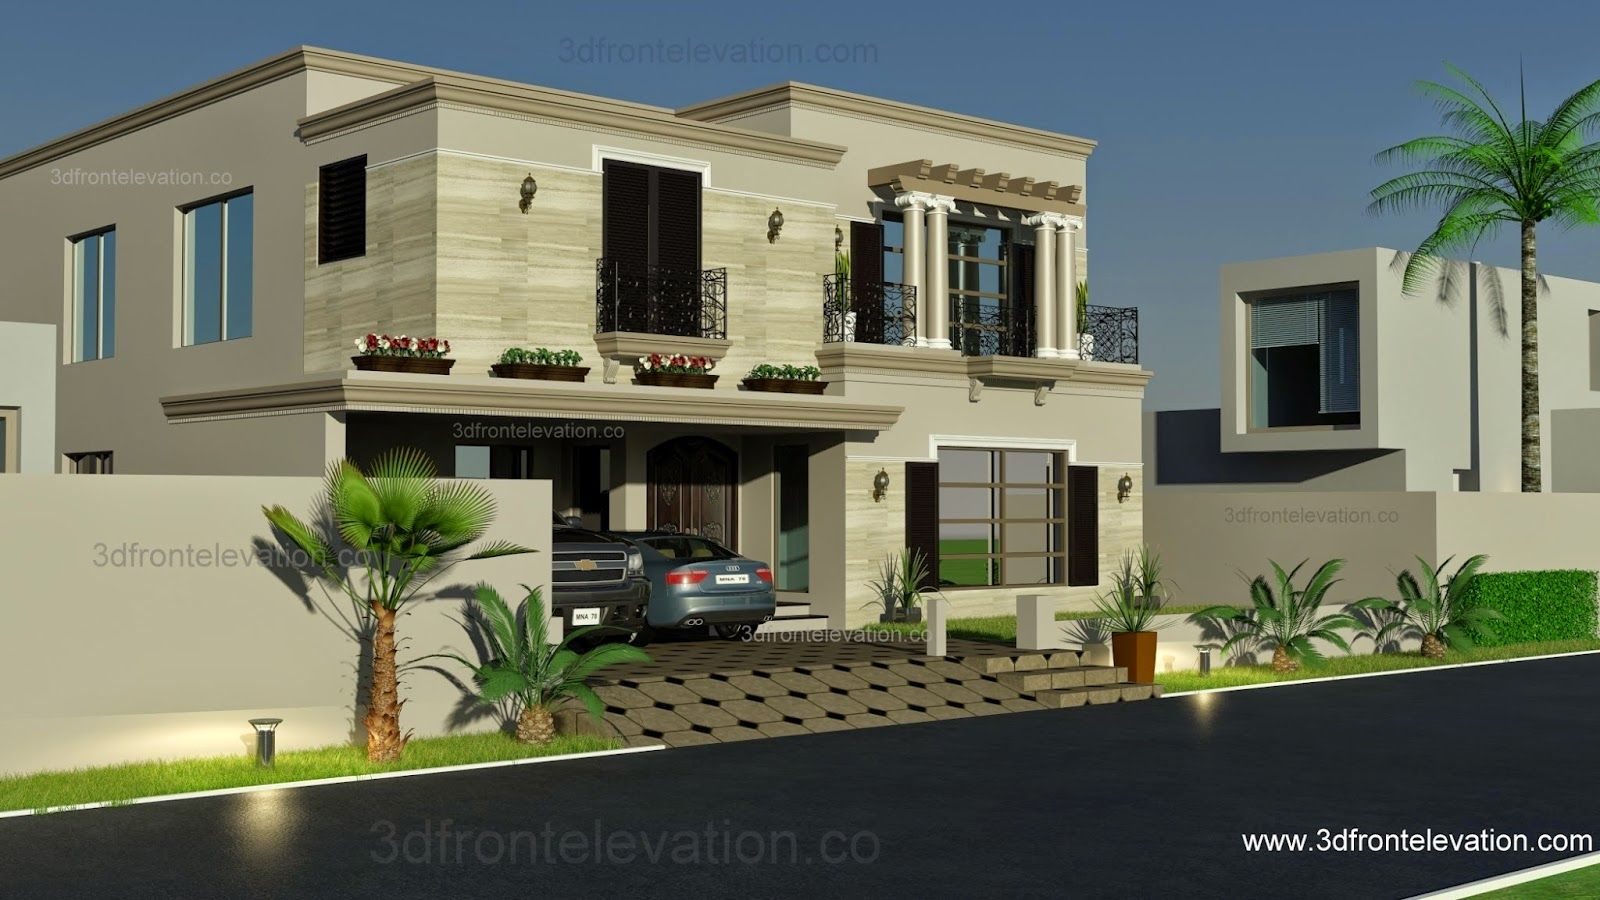 1 Kanal Spanish House Design Plan Dha Lahore Pakistan House Elevation Orieo Pinterest